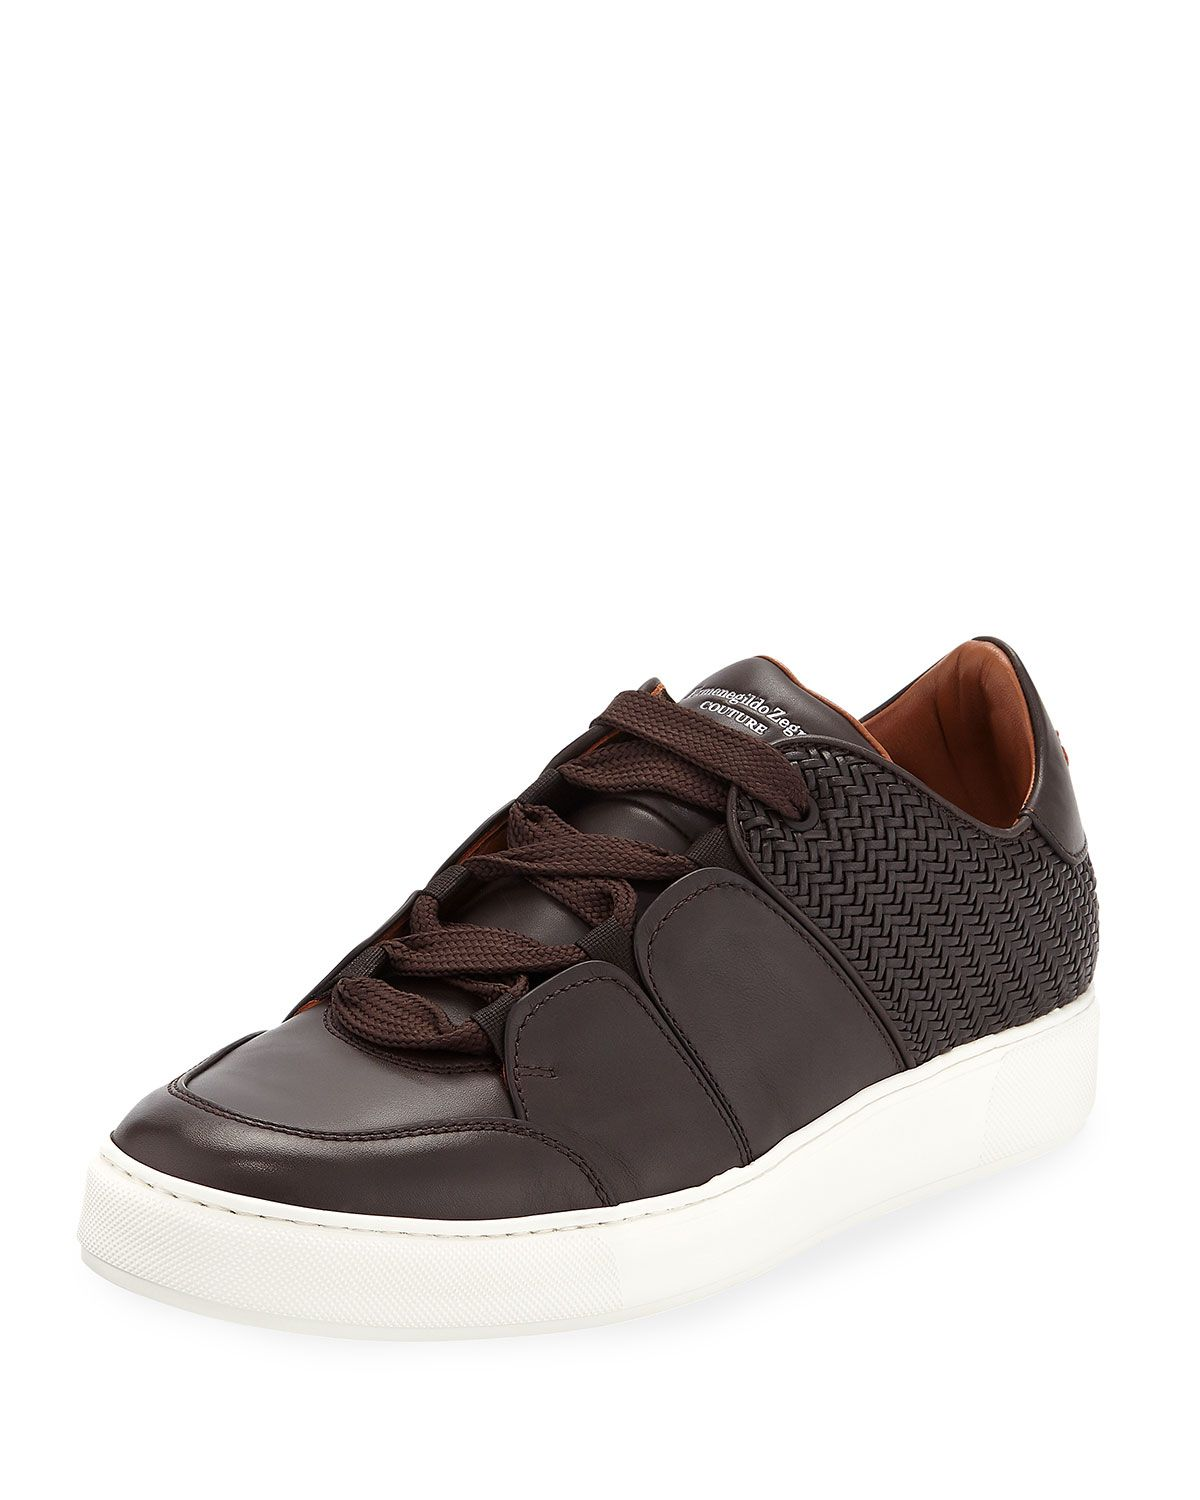 471ce4fe96c Men's Tiziano Leather Low-Top Sneakers in 2019 | MEN'S FOOTWEAR ...